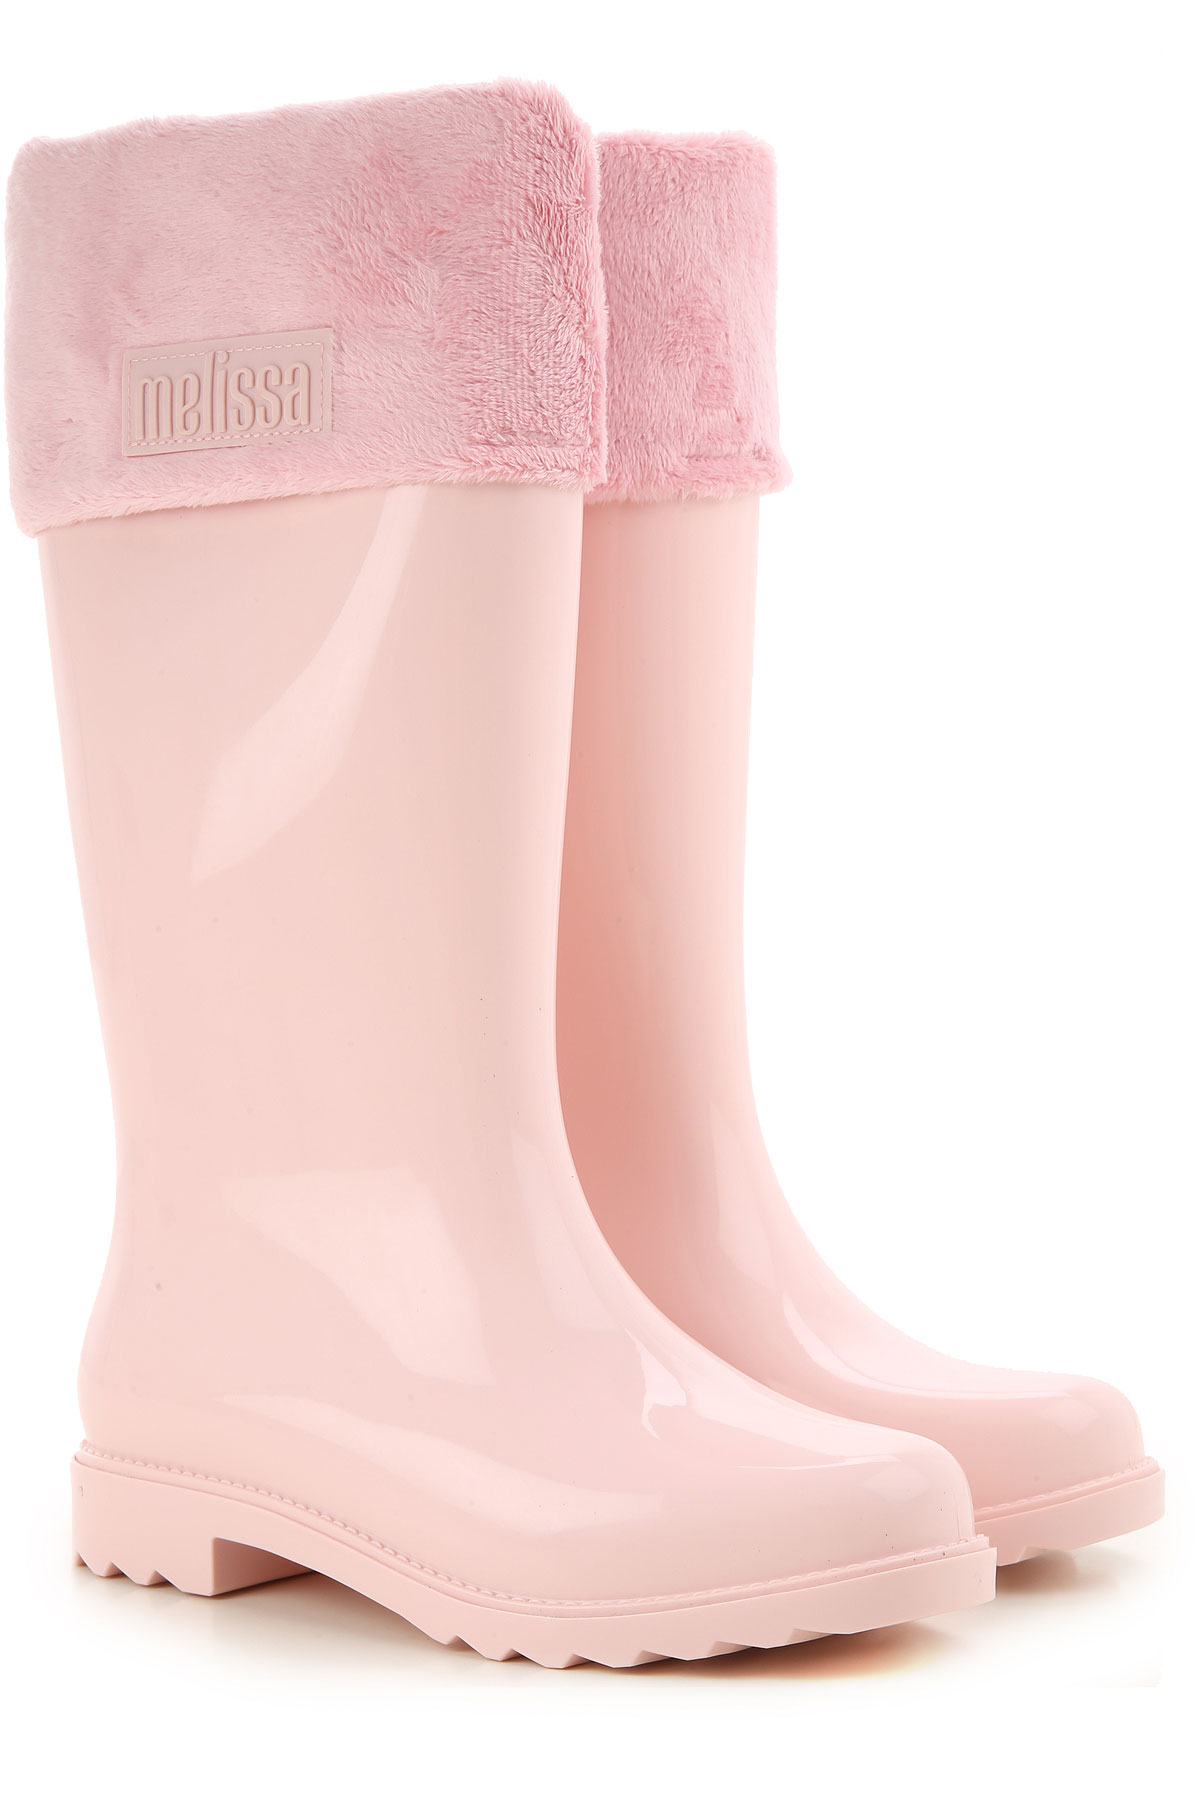 Melissa Boots for Women, Booties On Sale, Pink, PVC, 2019, USA 5 - EUR 35/36 USA 8 - EUR 39 USA 9 - EUR 40 USA 10 - EUR 41/42